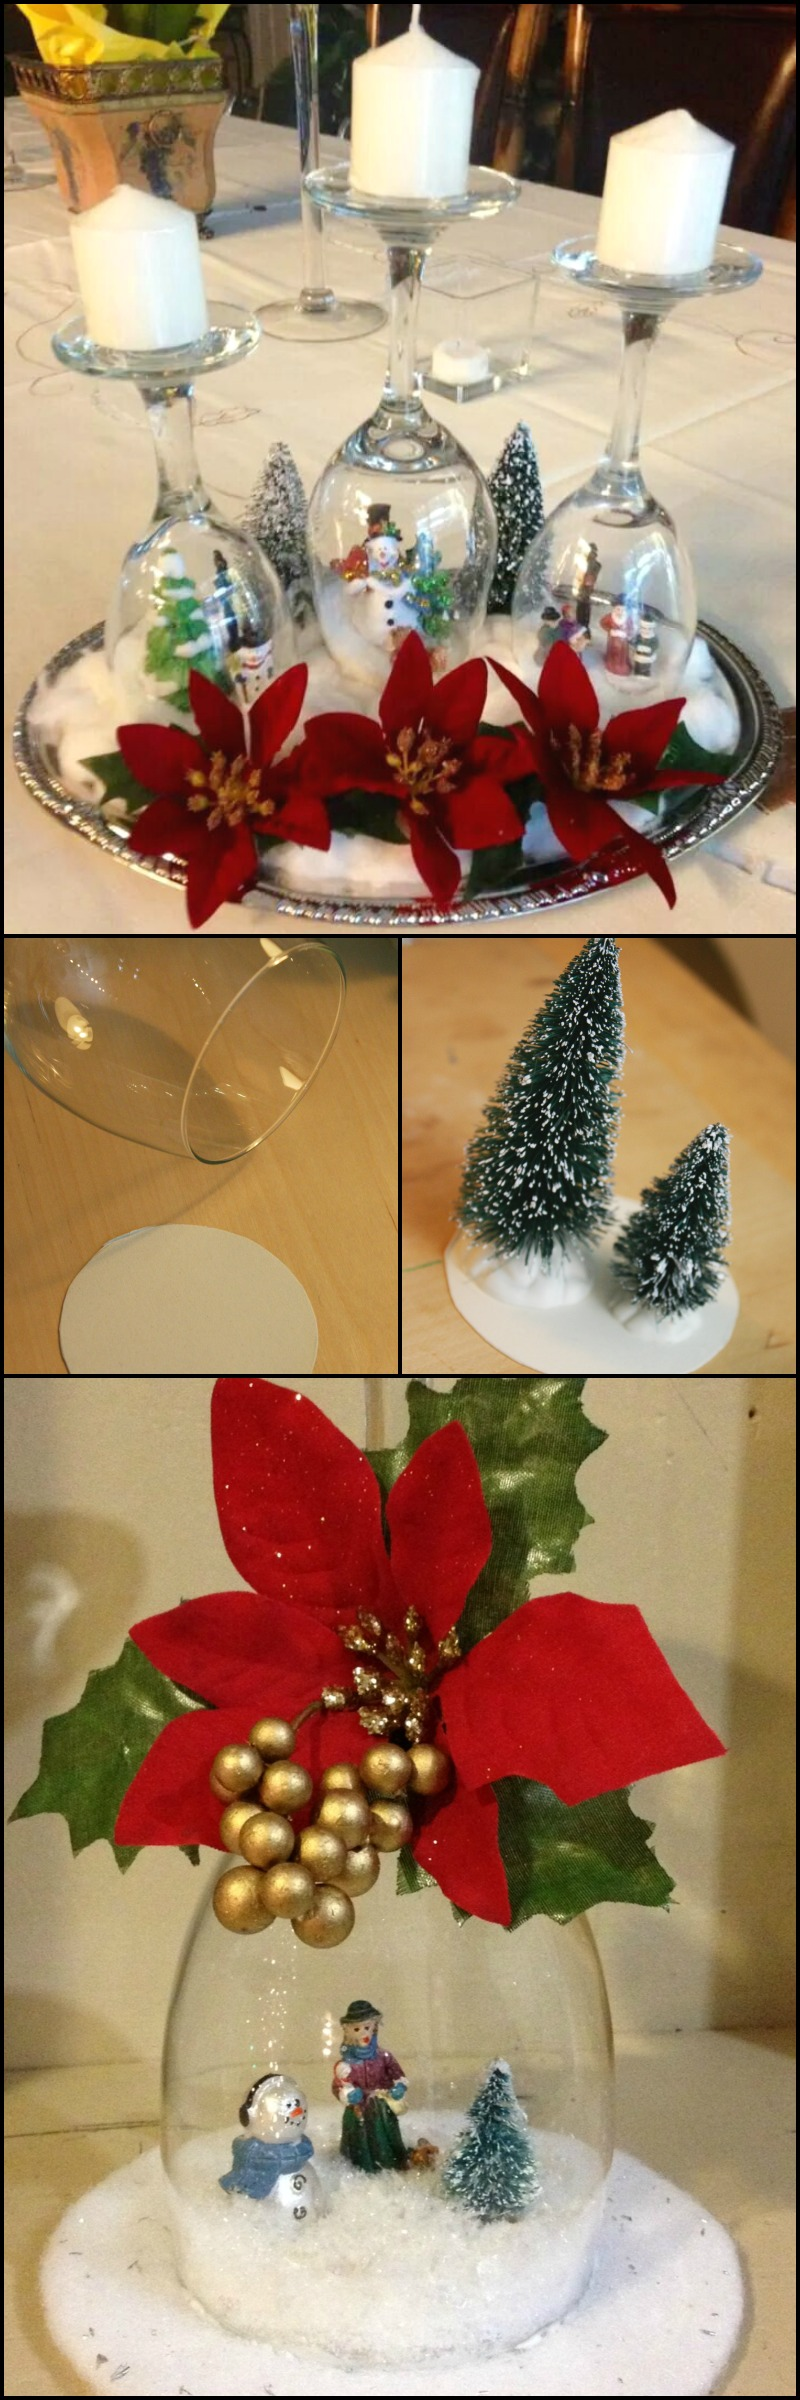 Here S A Nice Table Centerpiece Idea You Can Do For Christmas Eve Dinner And It S Easy To Mak Christmas Gift Wine Glasses Christmas Centerpieces Christmas Diy